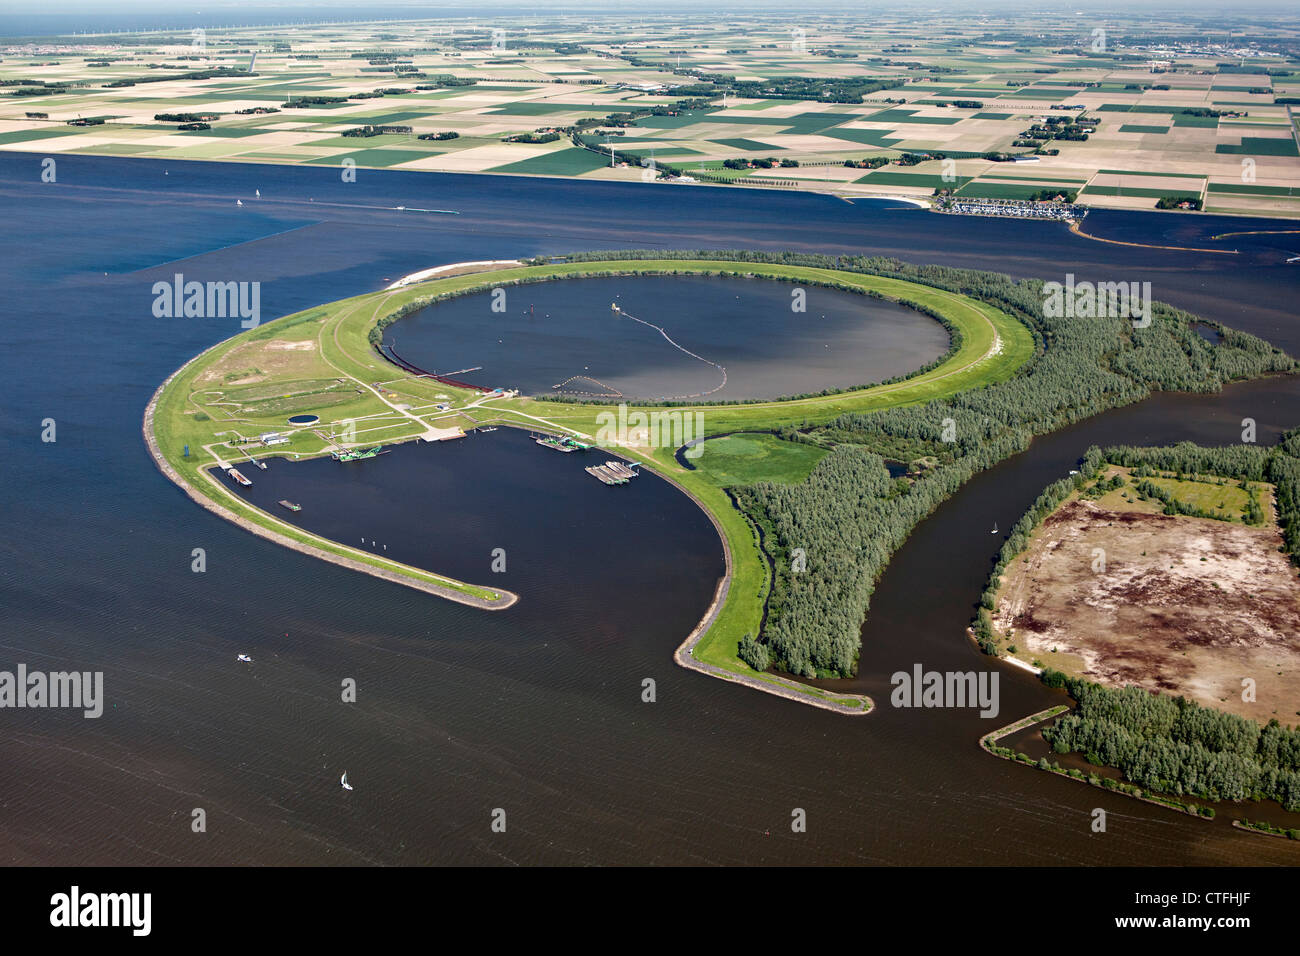 The Ijsseloog is an artificial island in the lake called Ketelmeer used as a deposit of silt pollution. Aerial. - Stock Image